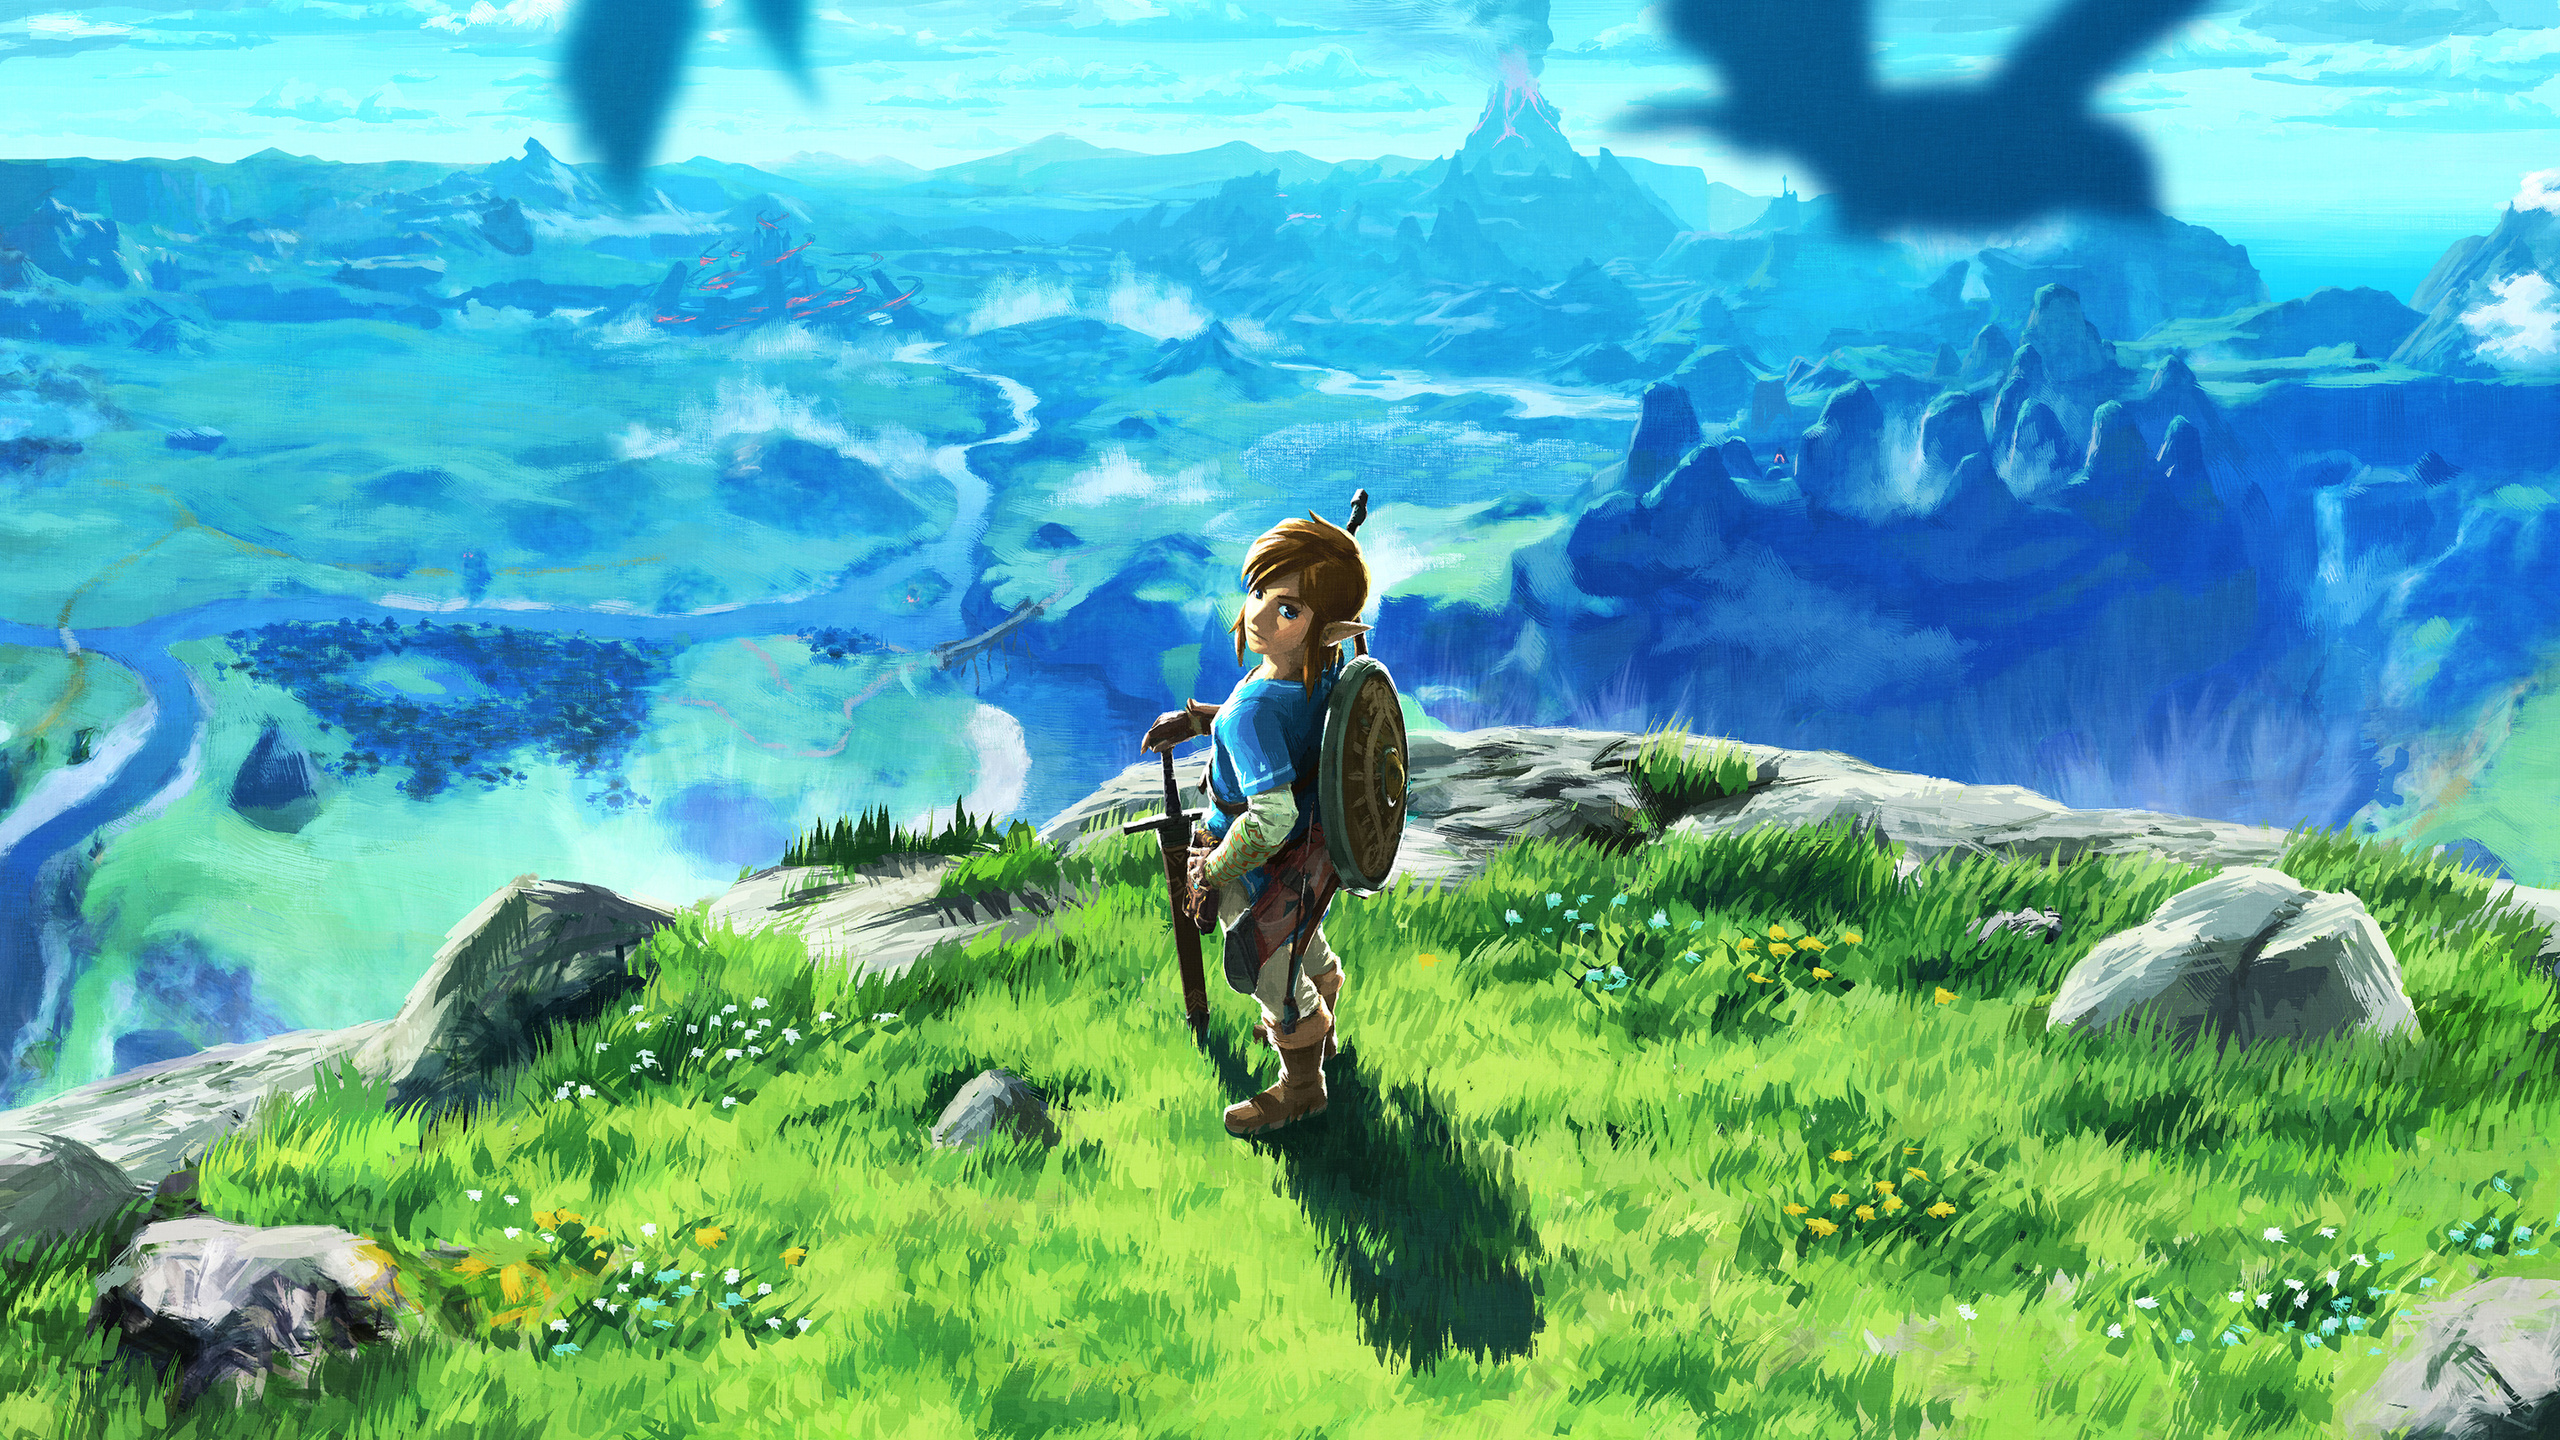 2560x1440 The Legend Of Zelda Breath Of The Wilk 2017 Game 1440p